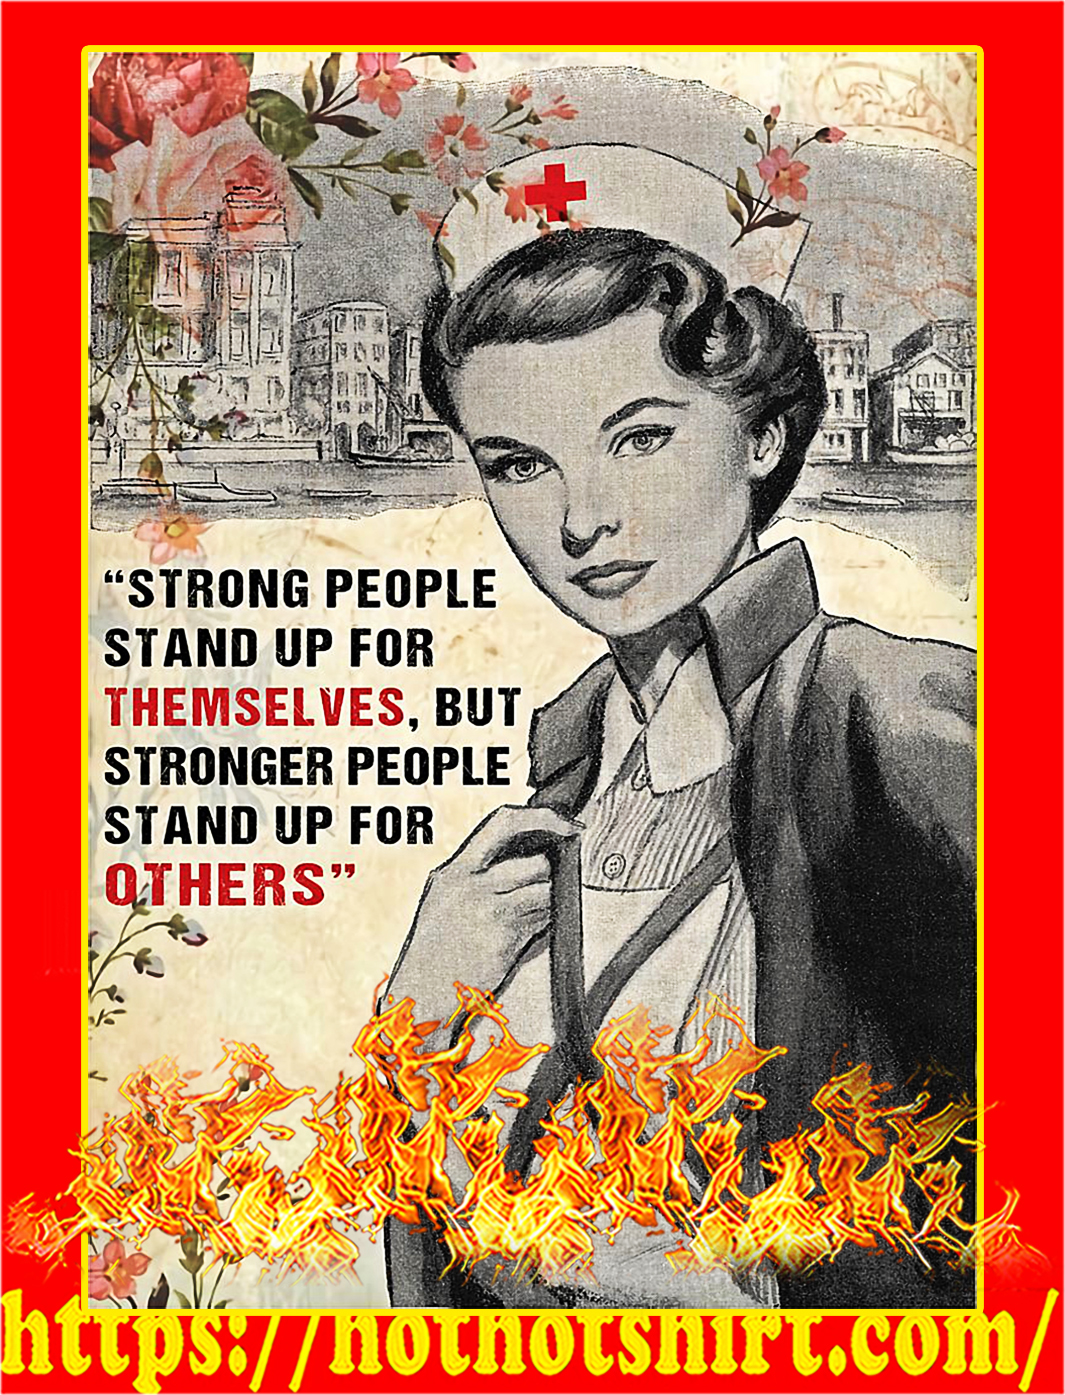 Strong people stand up for themselves nurse poster - A4